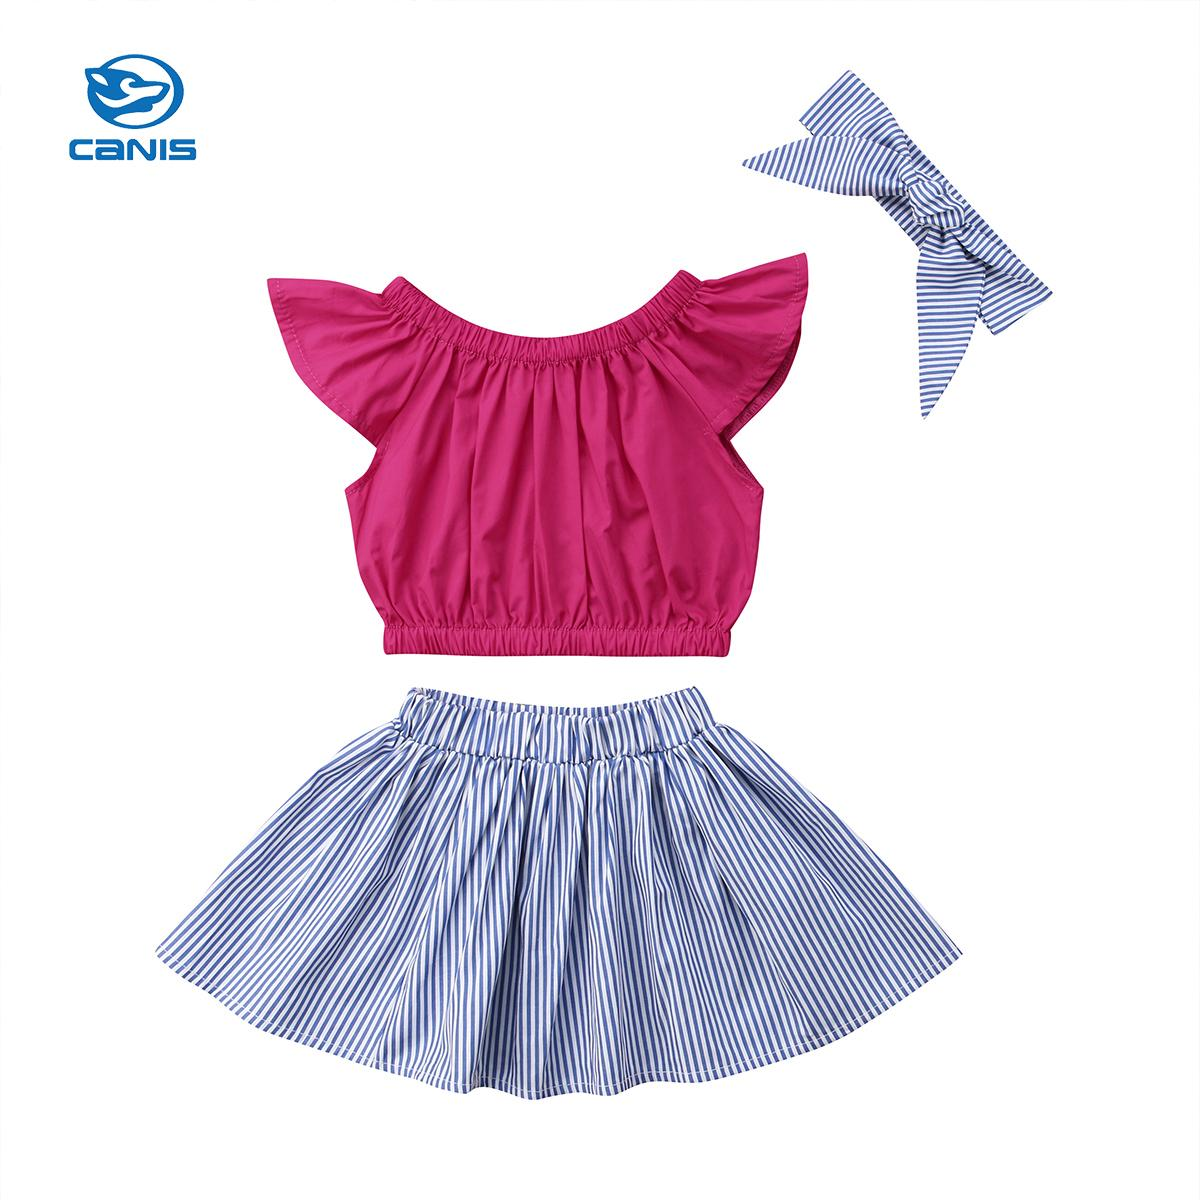 f81ab6df9d47 2019 Newborn Baby Clothes Set Kids Baby Girls Clothes Flying Sleeve T Shirt  Tops+Tutu Striped Skirt Summer Children Sets 0 5Y From Localking